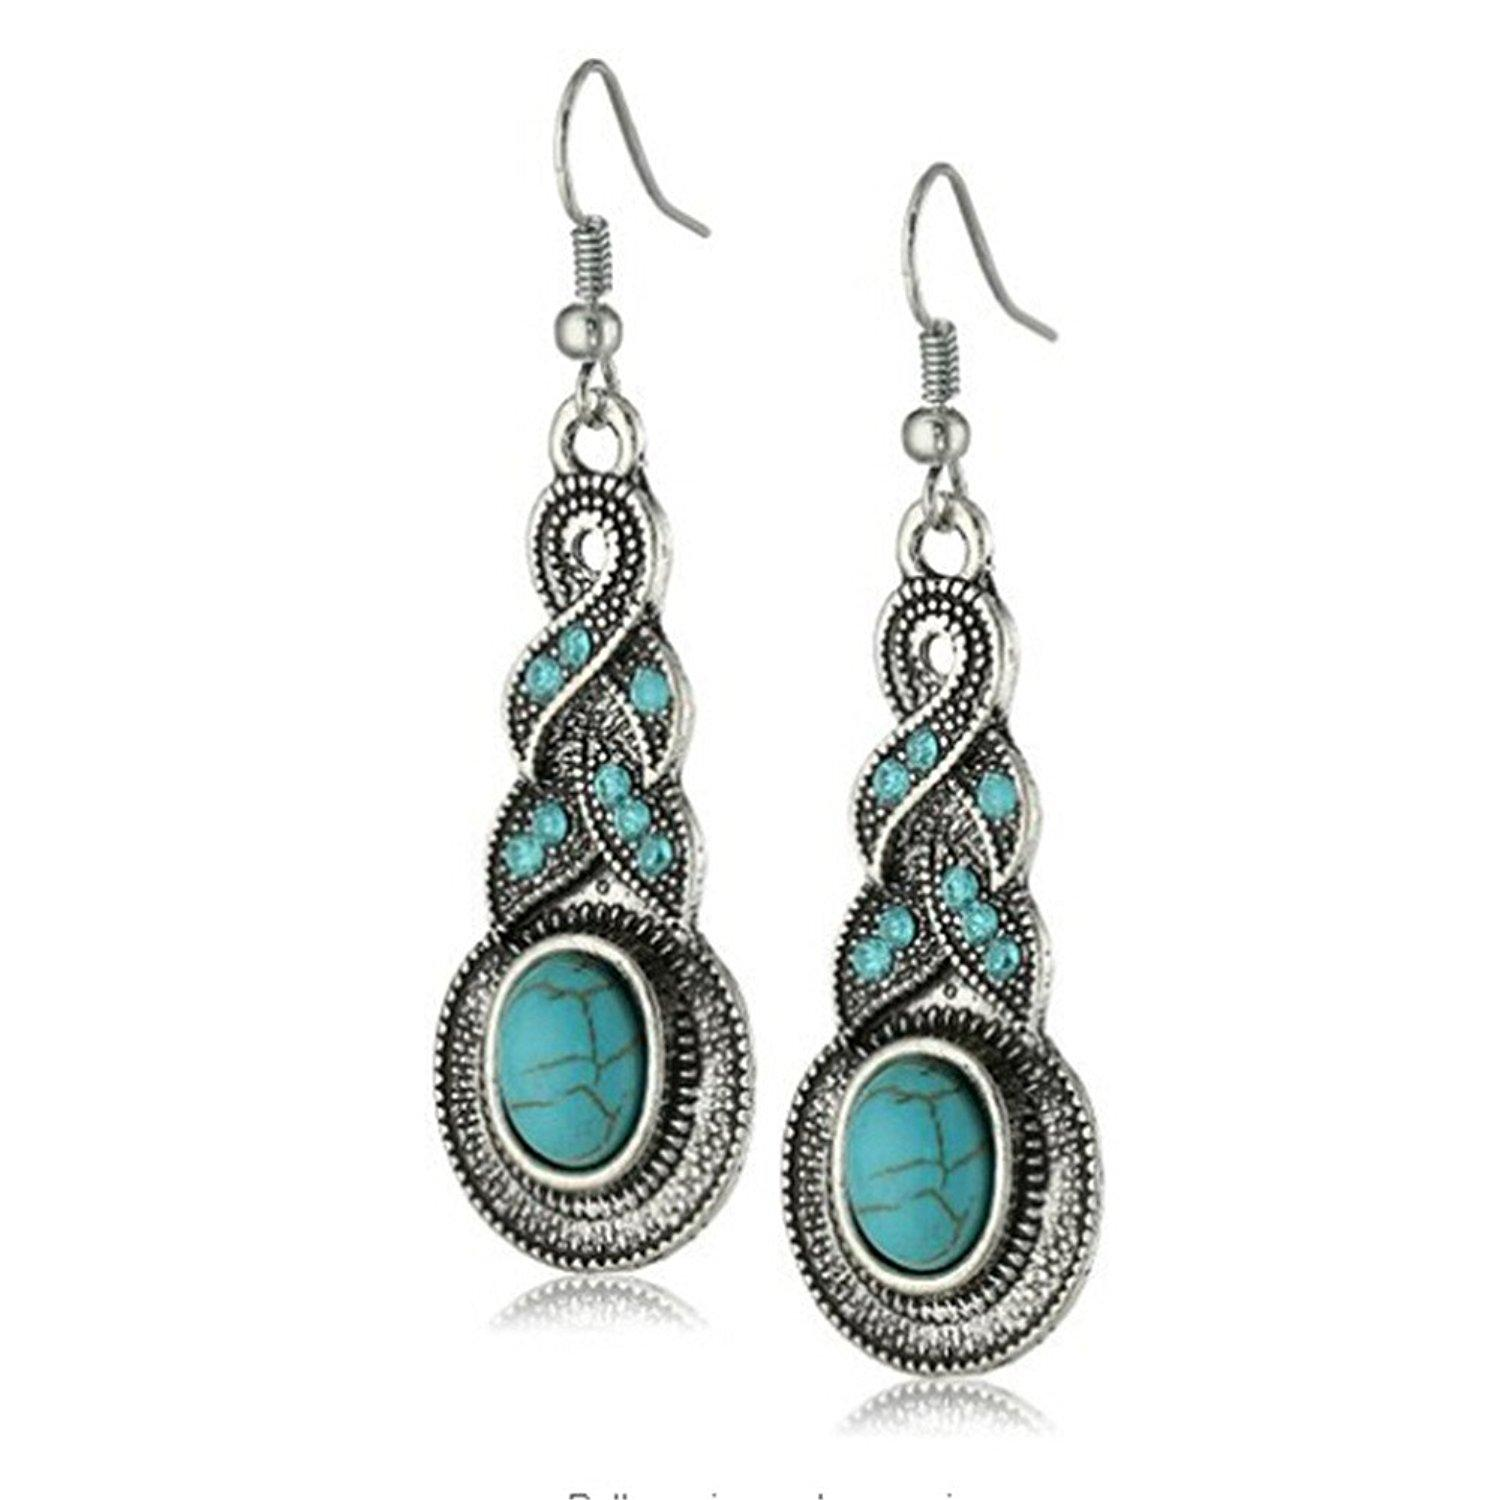 3a34cbc77 2019 GEMIN Ethnic Tibetan Silver Oval Rimous Turquoise Crystal Drop Dangle  Earrings From Gemin1990, $2.02 | DHgate.Com